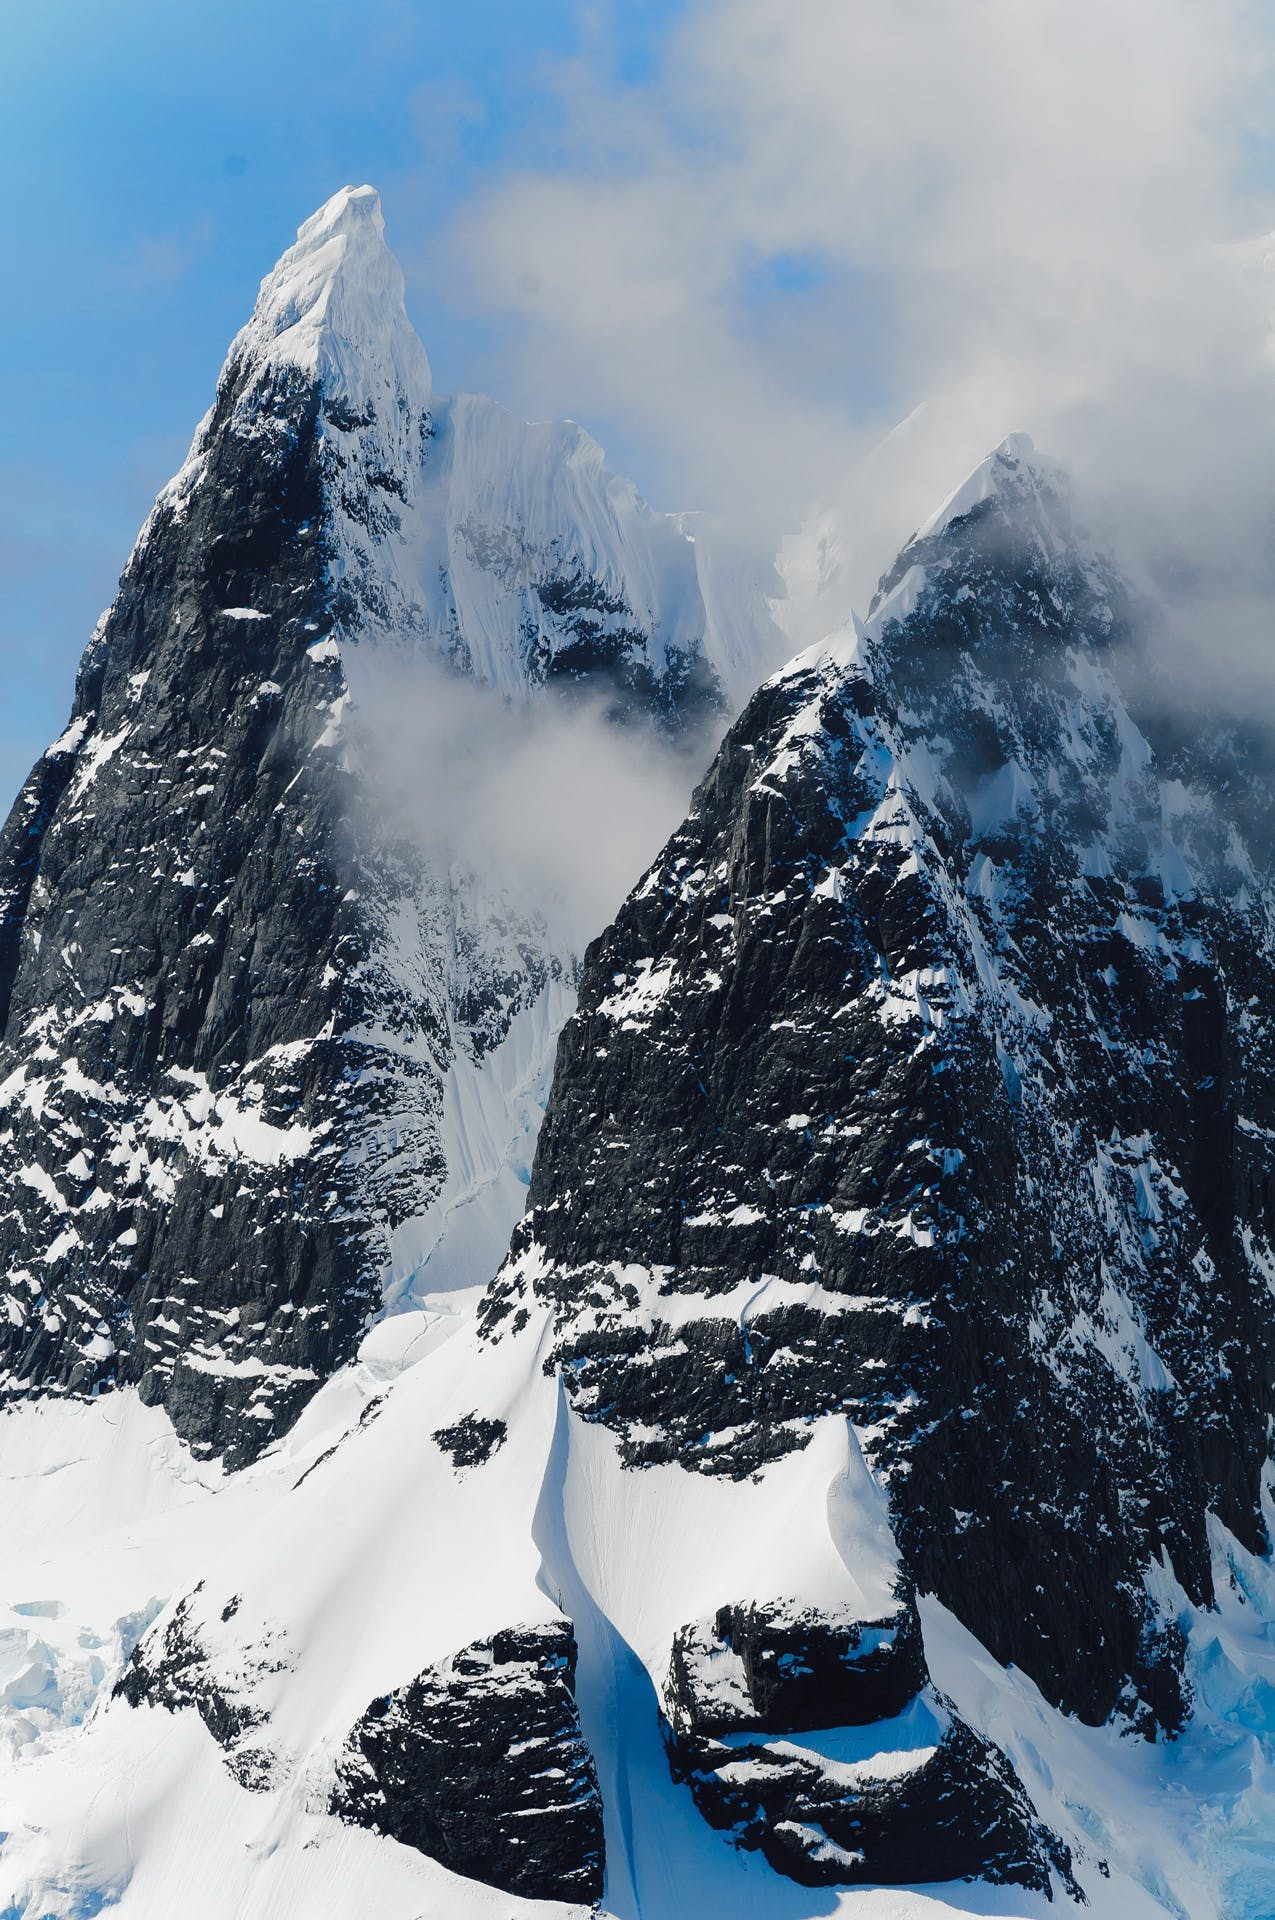 Black Snow Covered Mountain